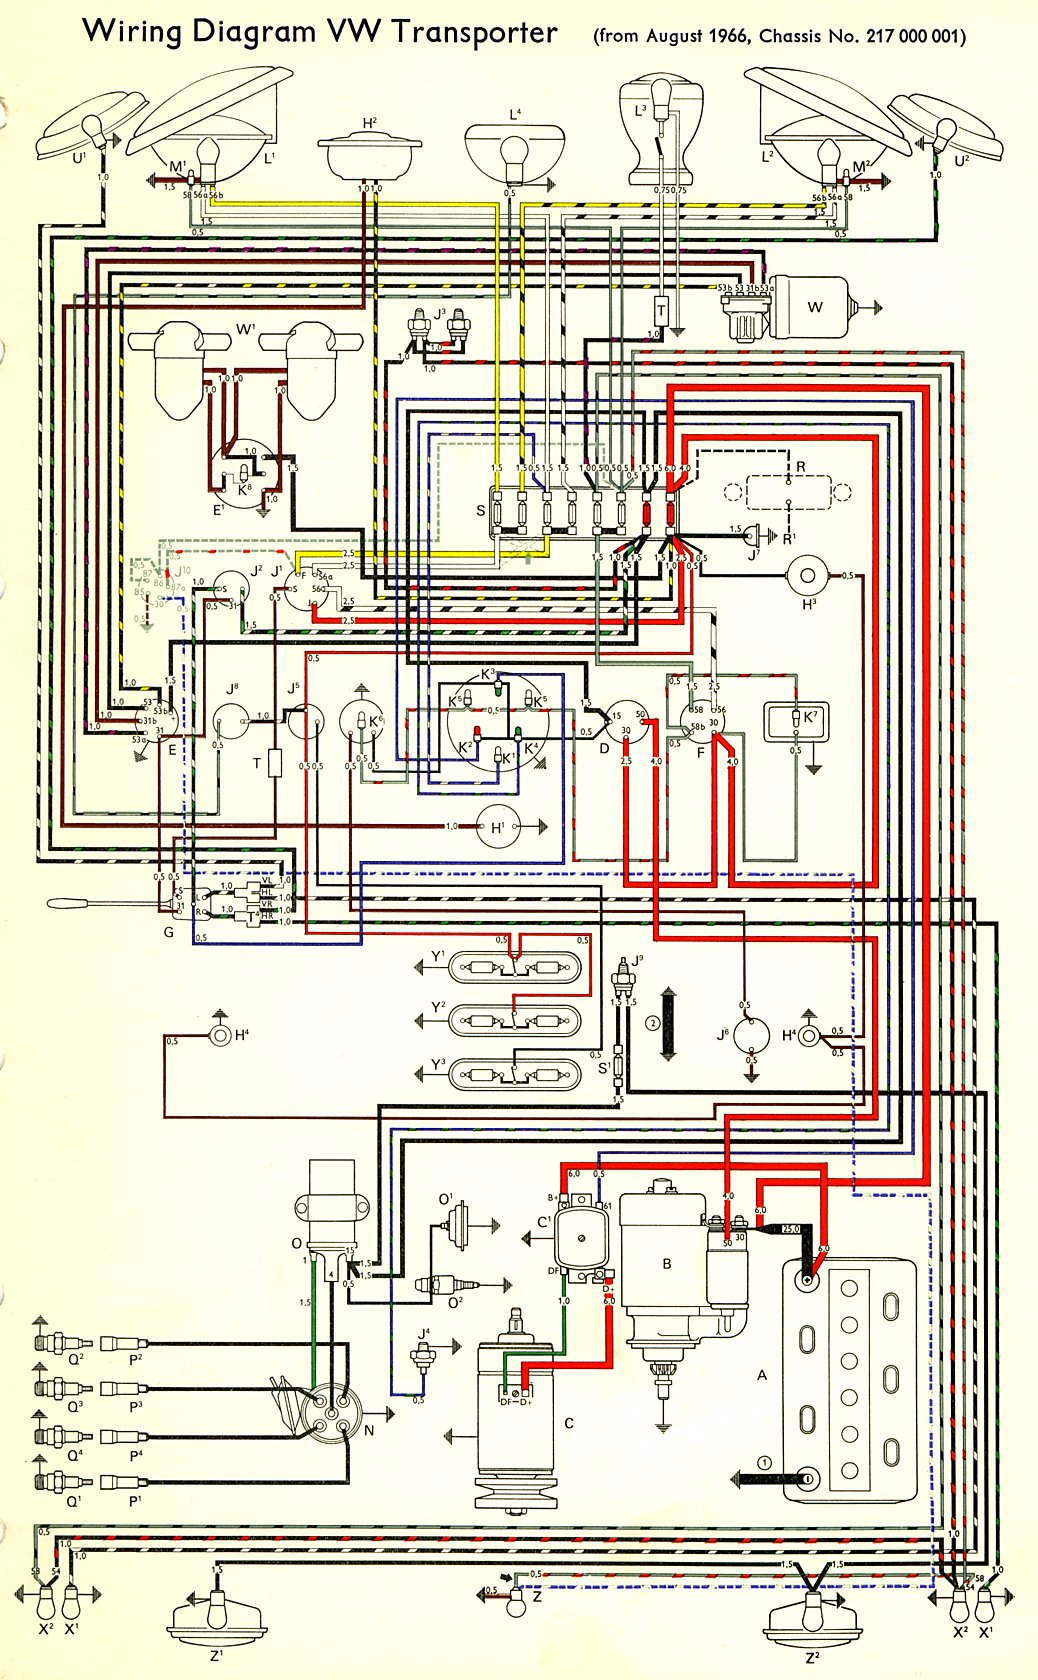 hight resolution of 67 vw wiring diagram schematic diagrams 1964 ford falcon wiring diagram 1967 vw radio wiring diagram